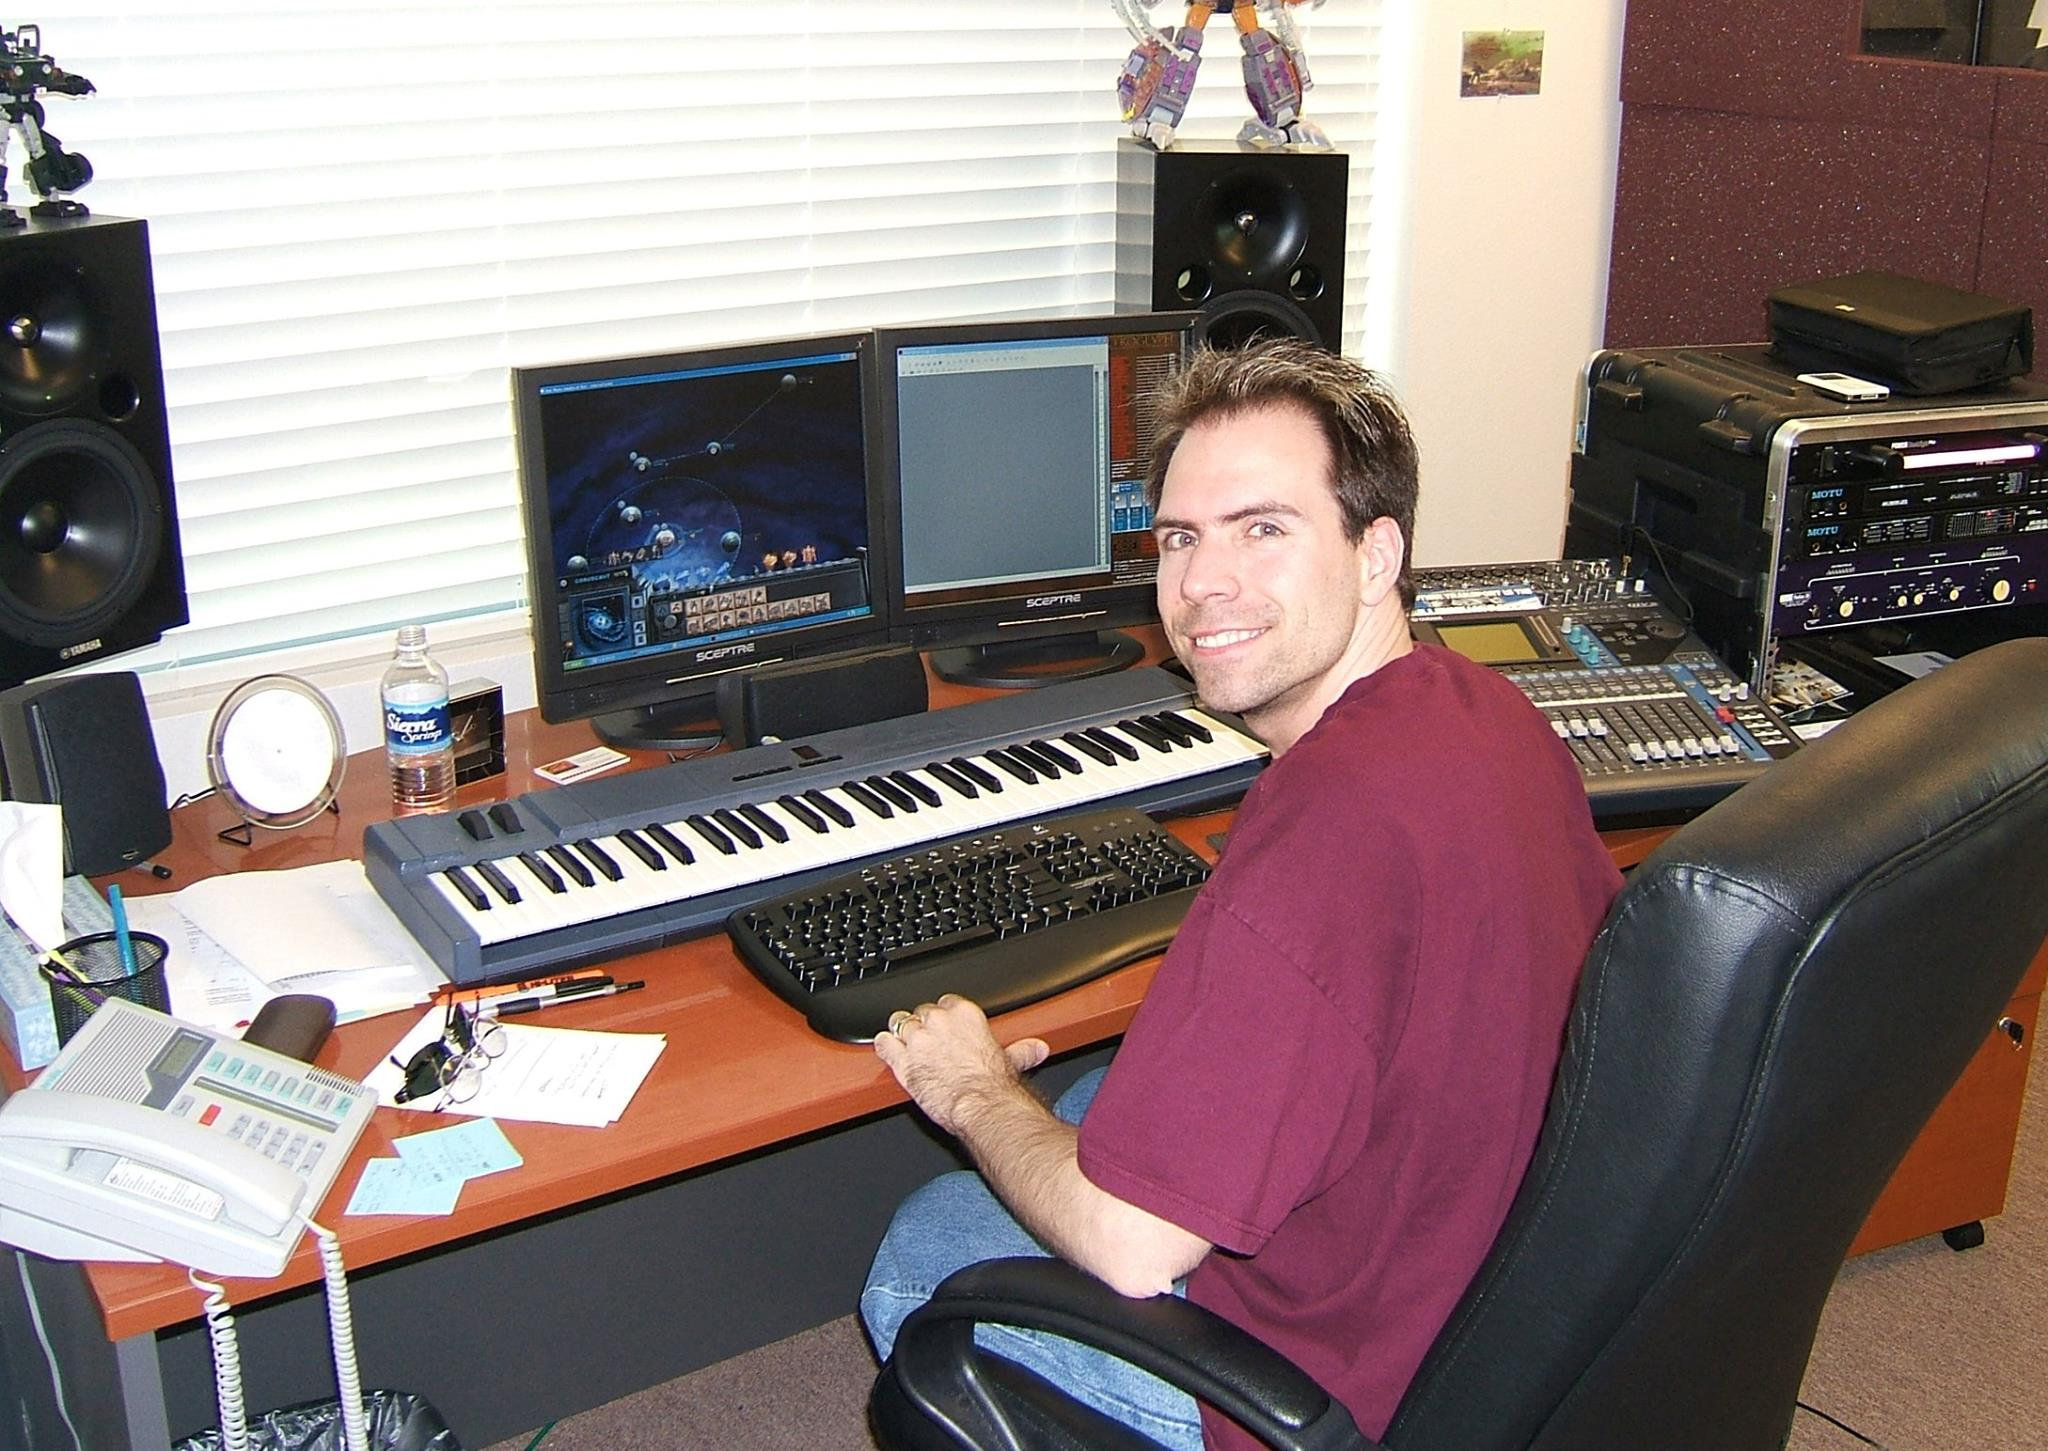 My old office at Petroglyph in 2005, working on Star Wars: Empire at War